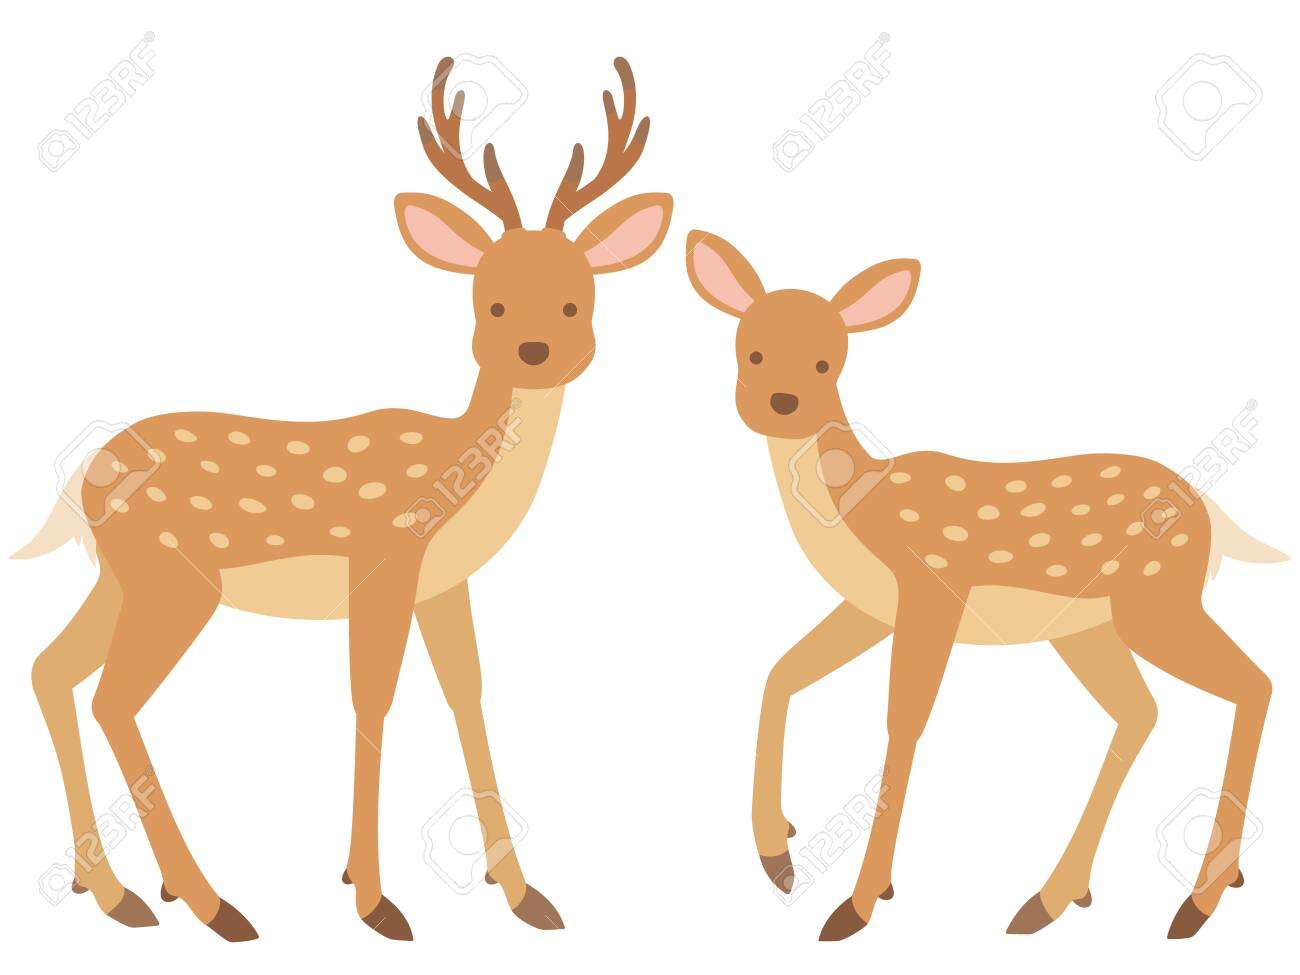 Illustration of stag and female deer - 136159595